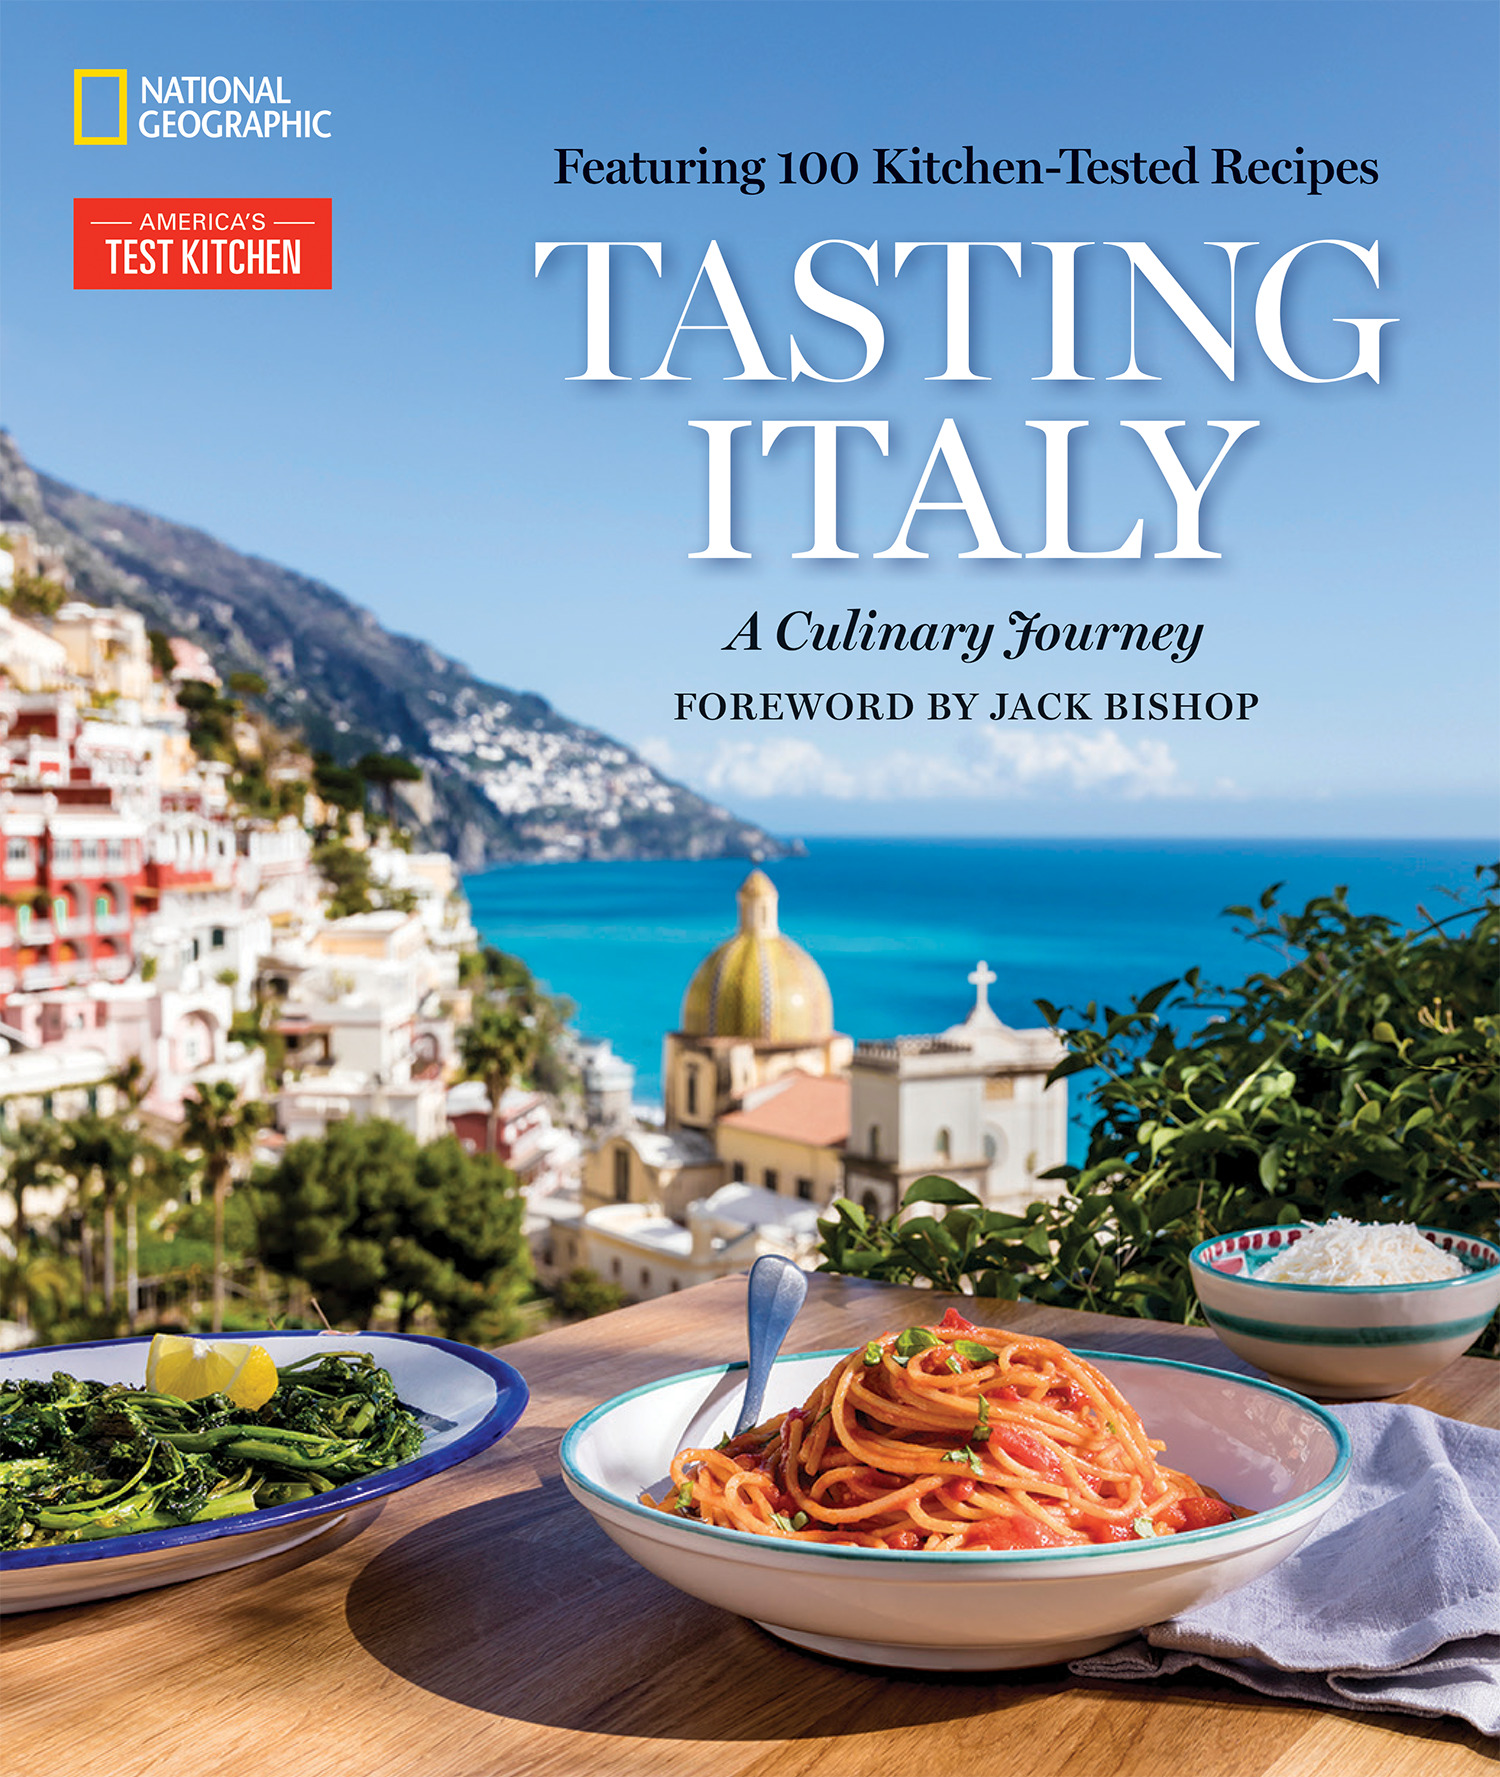 Tasting Italy A Culinary Journey, America's Test Kitchen, National Geographic, AD